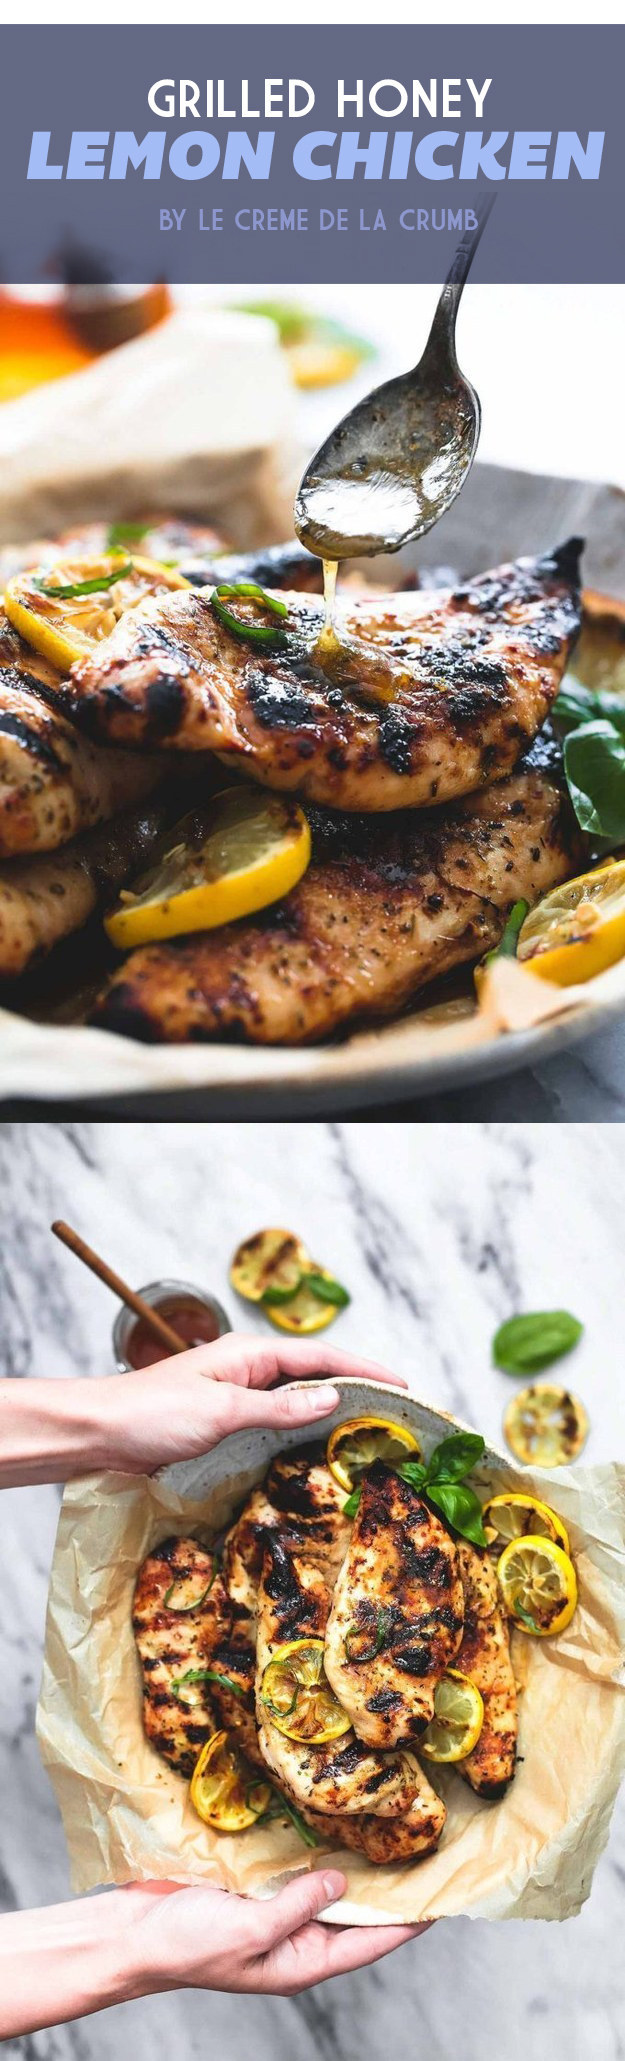 Grilled Honey Lemon Chicken